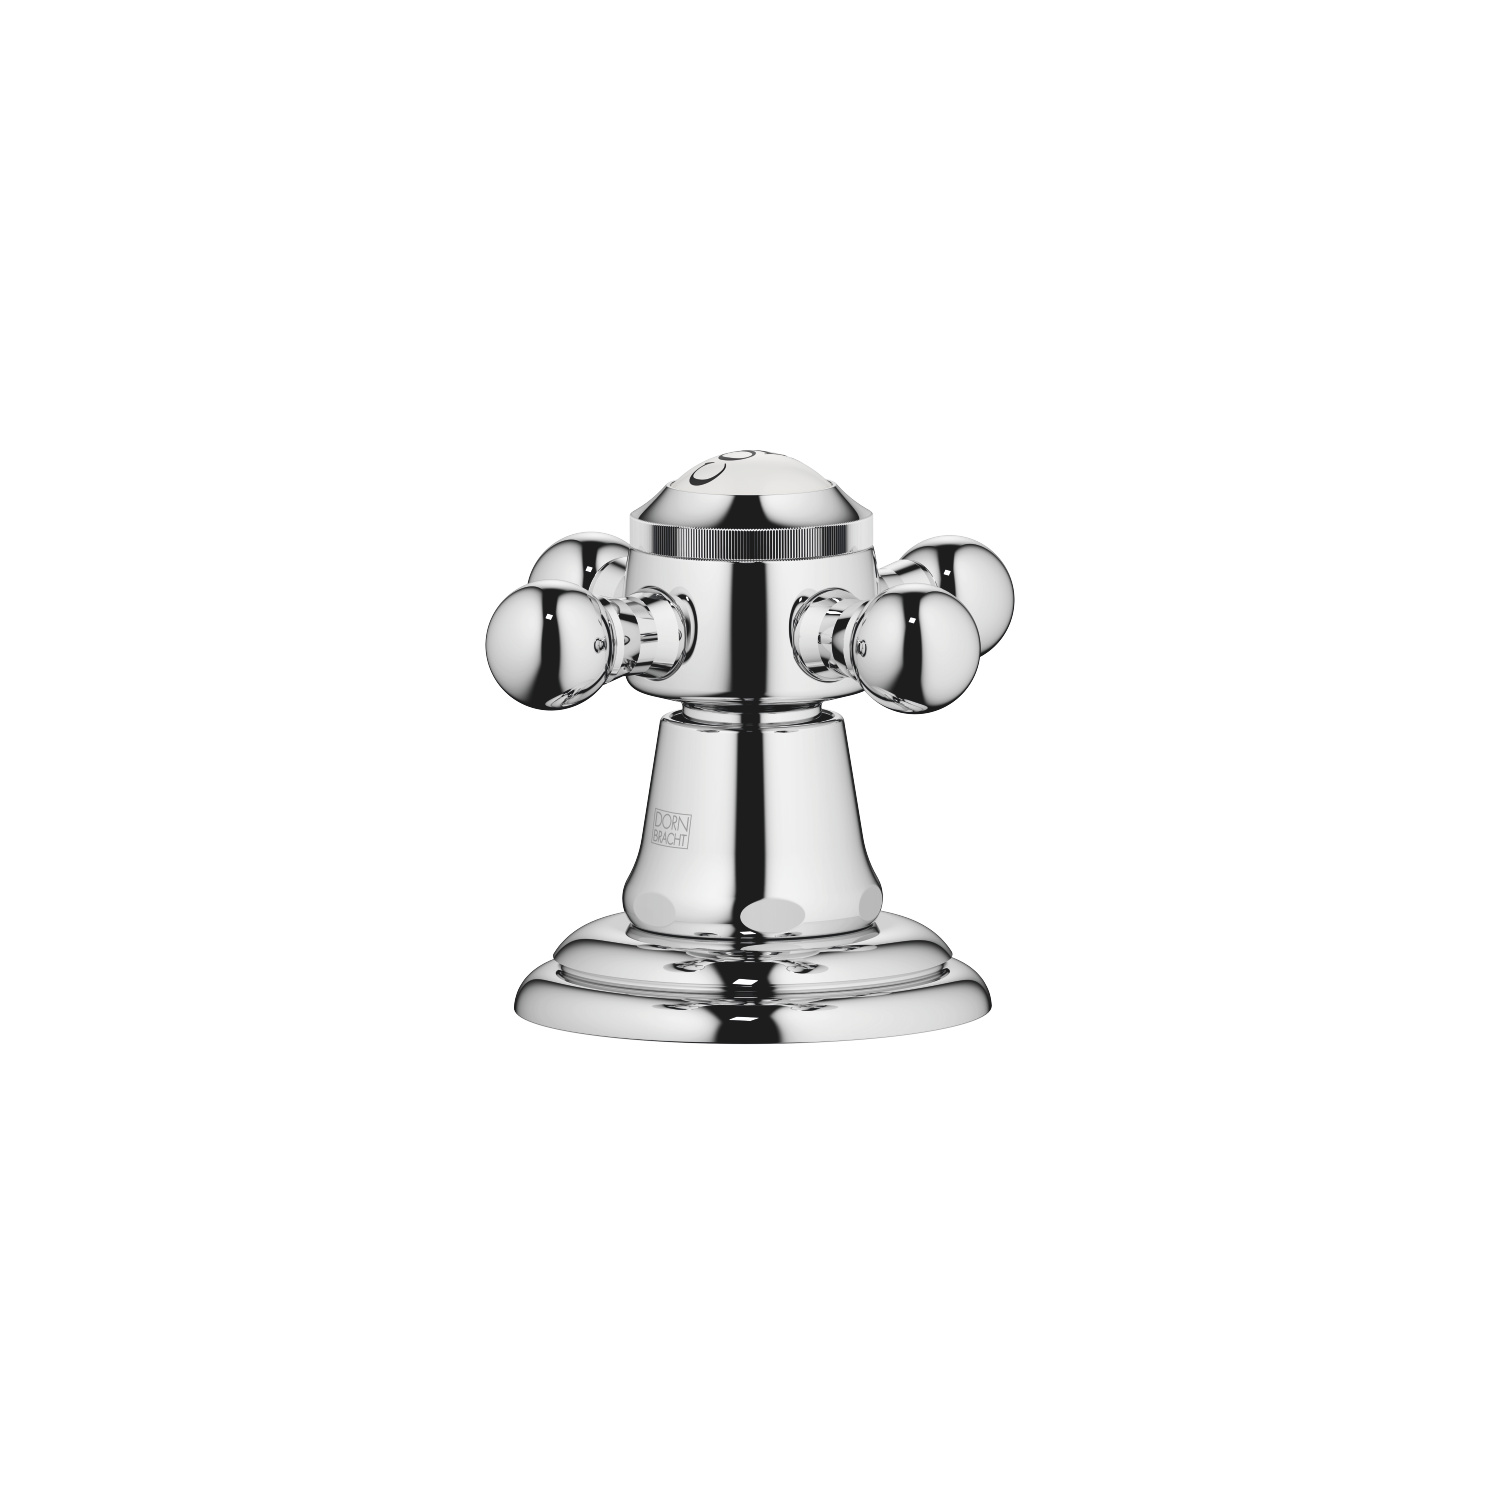 Deck valve clockwise-closing hot or cold - polished chrome